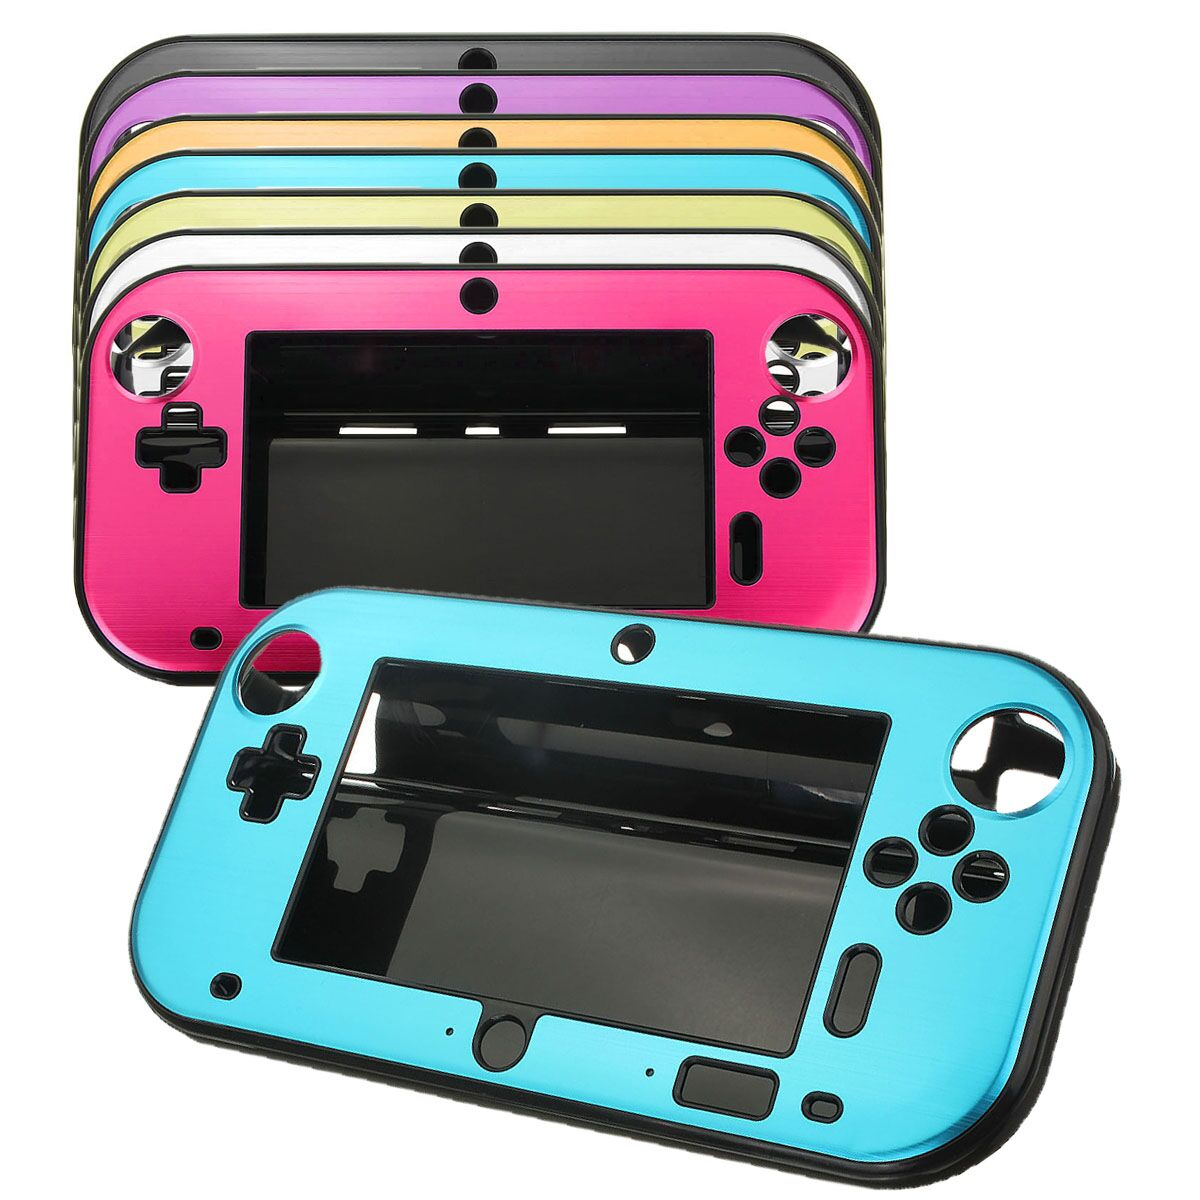 New Hot Sale 7 Colors Aluminum Case Cover Protector For Nintendo For Wii U Gamepad Remote Controller Accessories High Qualtiy(China (Mainland))